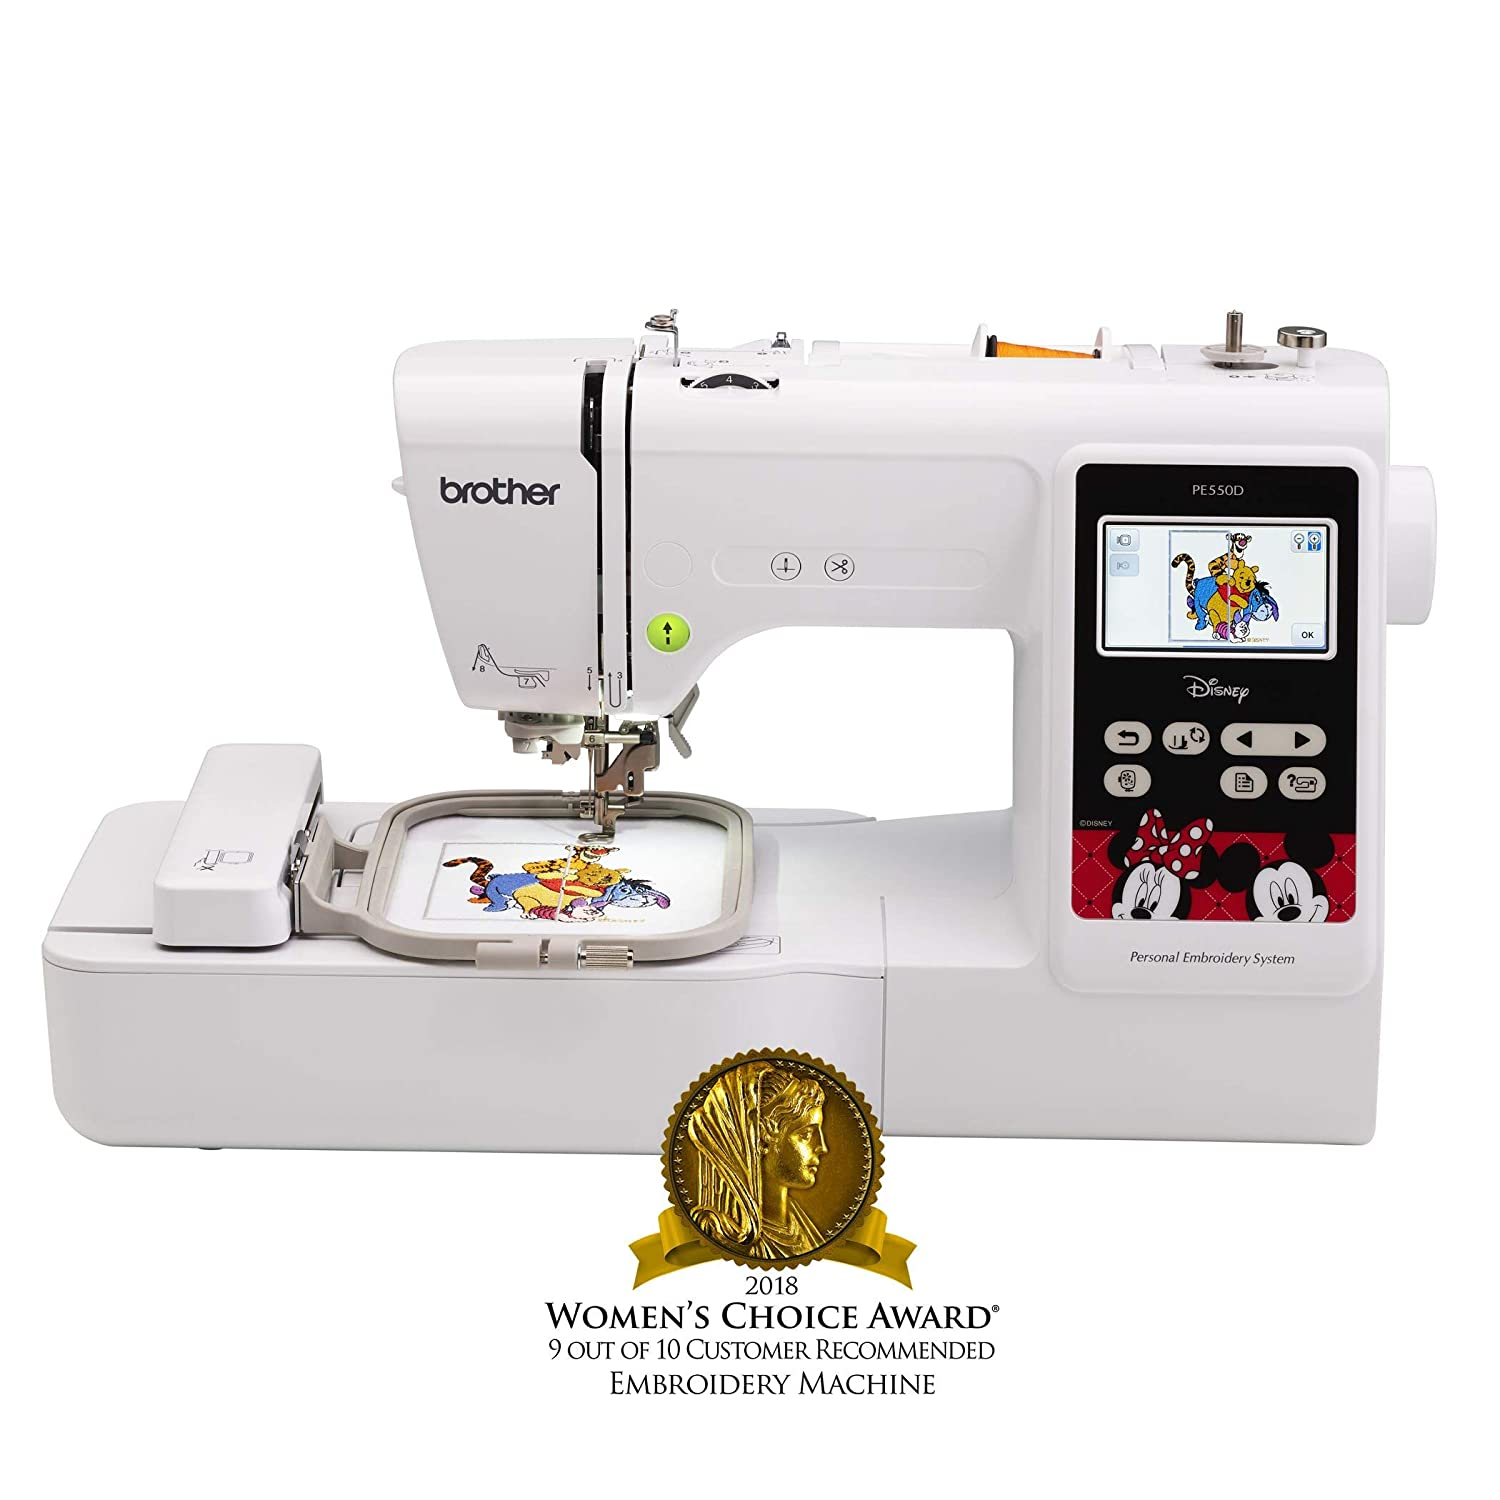 Renewed Large Color Touch LCD Display Automatic Needle Threader Brother Embroidery Machine 45 Disney Designs PE550D 25-Year Limited Warranty 125 Built-In Designs